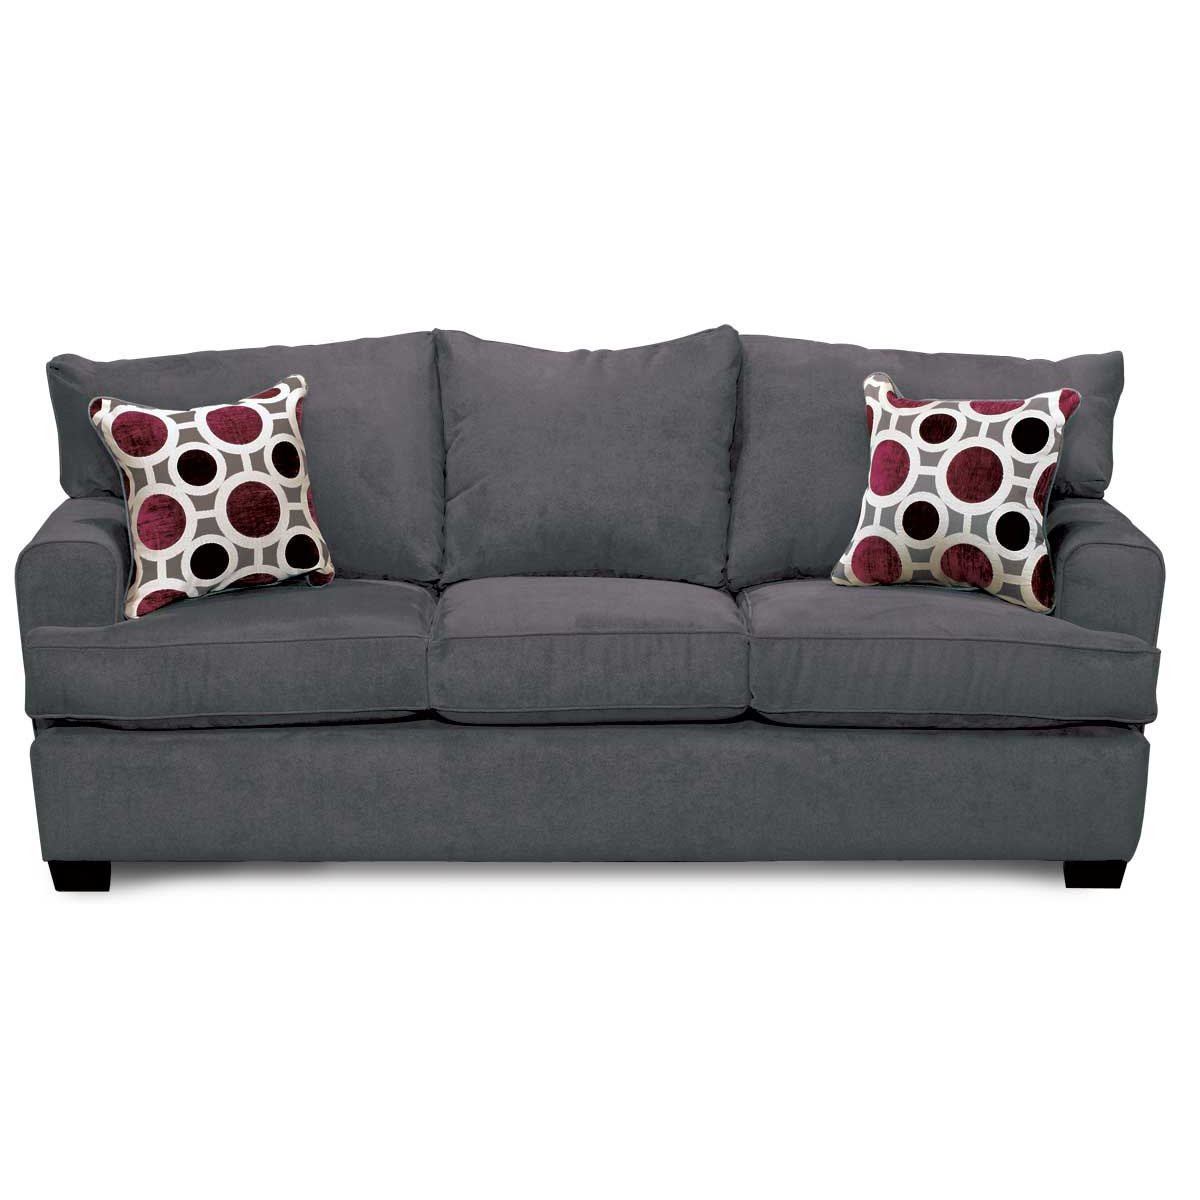 City 84 Sterling Grey Upholstered Sofa Sleeper